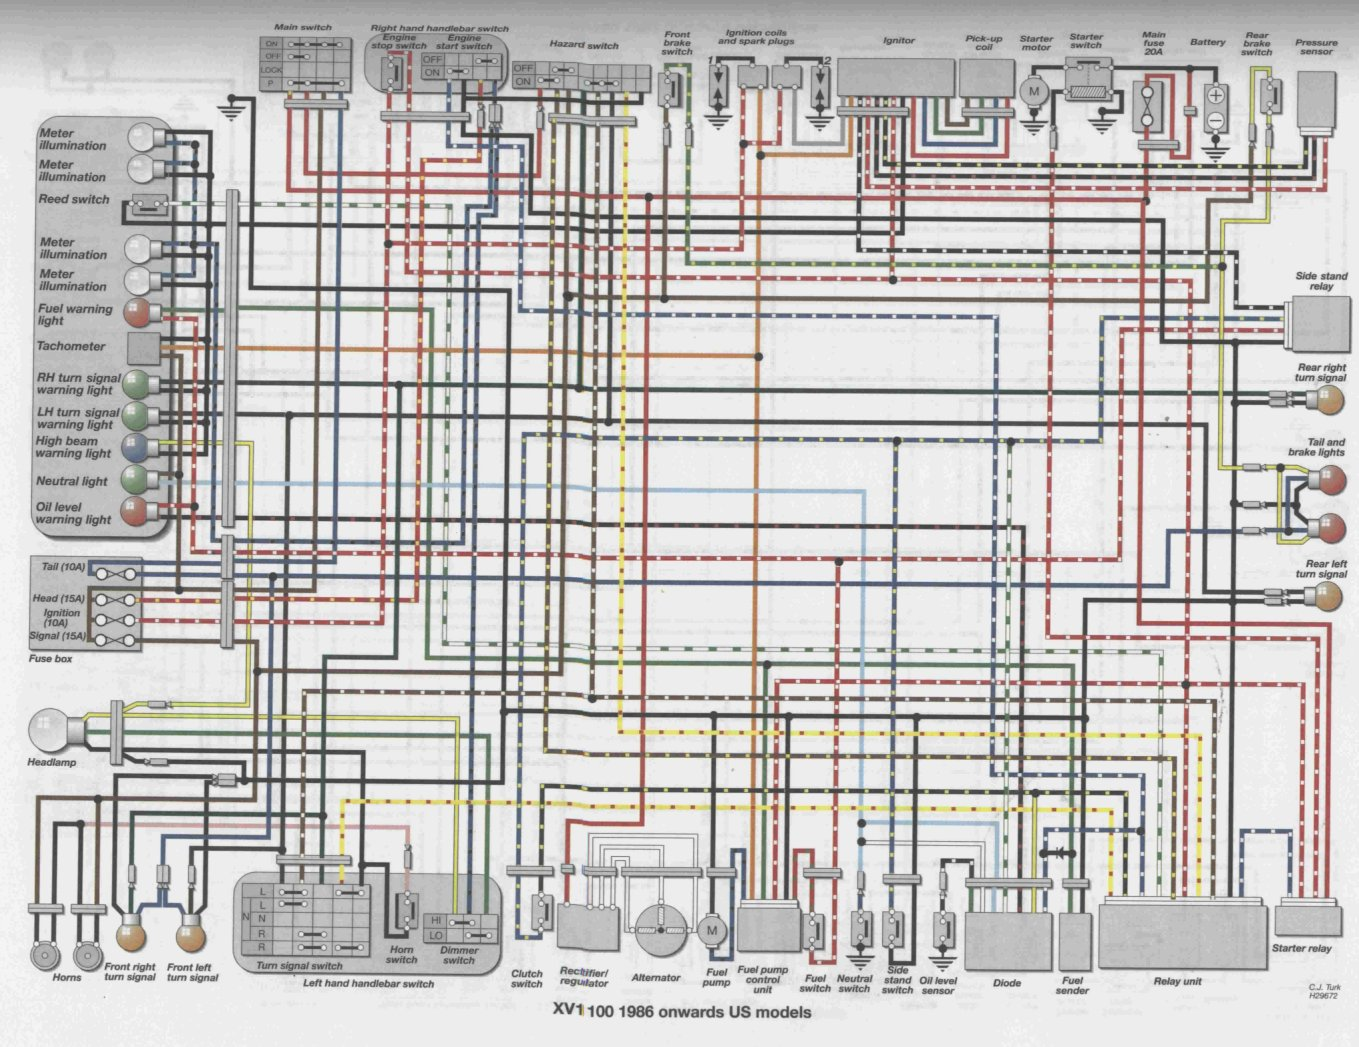 wiring diagram yamaha virago electrical wiring diagram yamaha rhino viragotechforum.com • view topic - re: 86 xv1100 starting ...